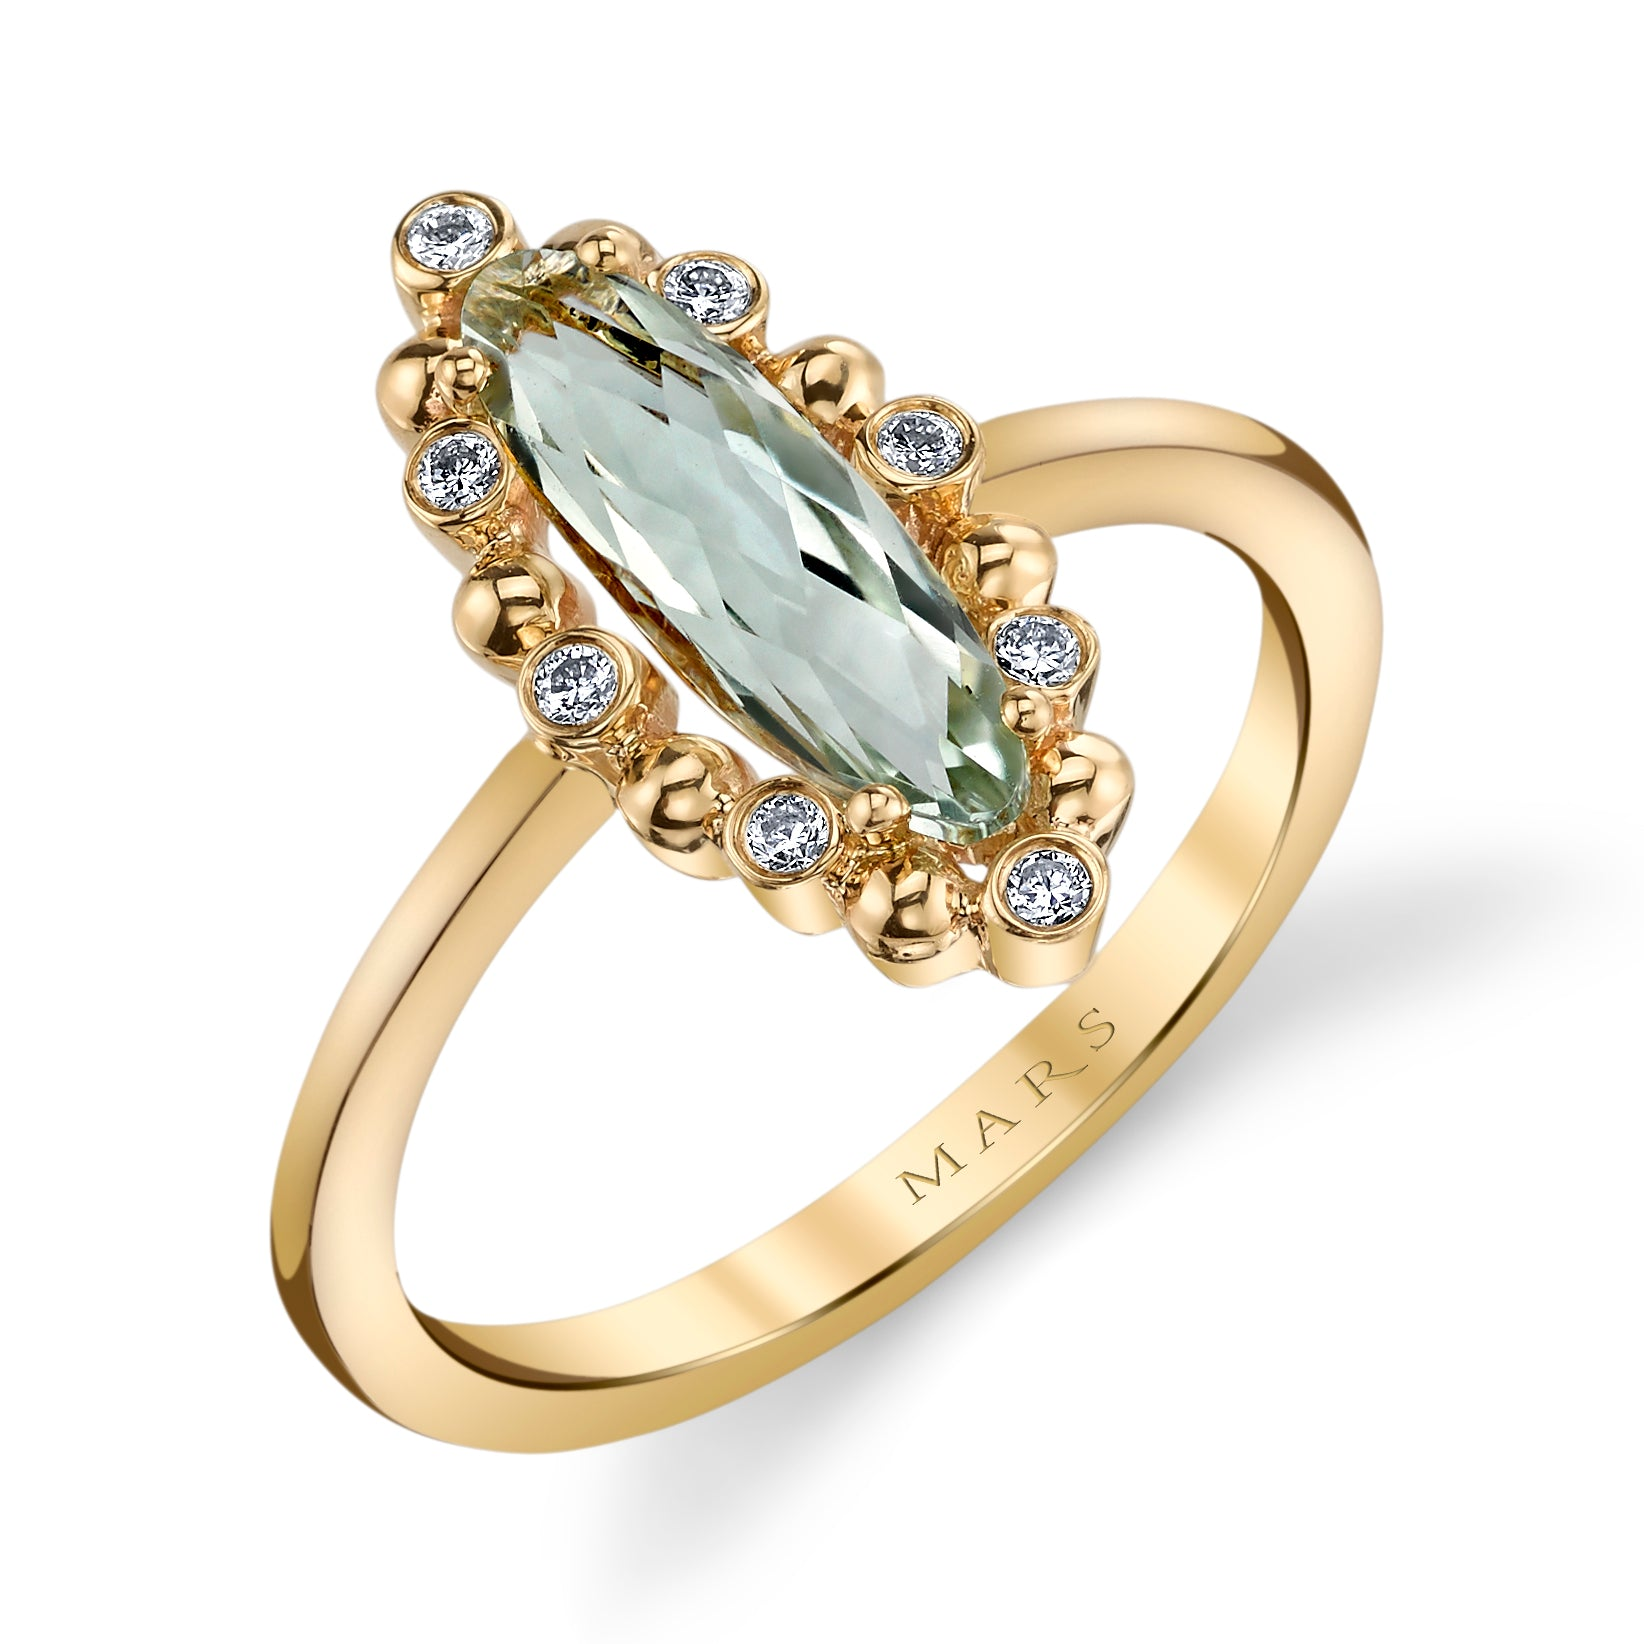 Mars Jewelry 14K Yellow Gold Fashion Ring w/ Diamonds & Mint Green Amethyst 26926